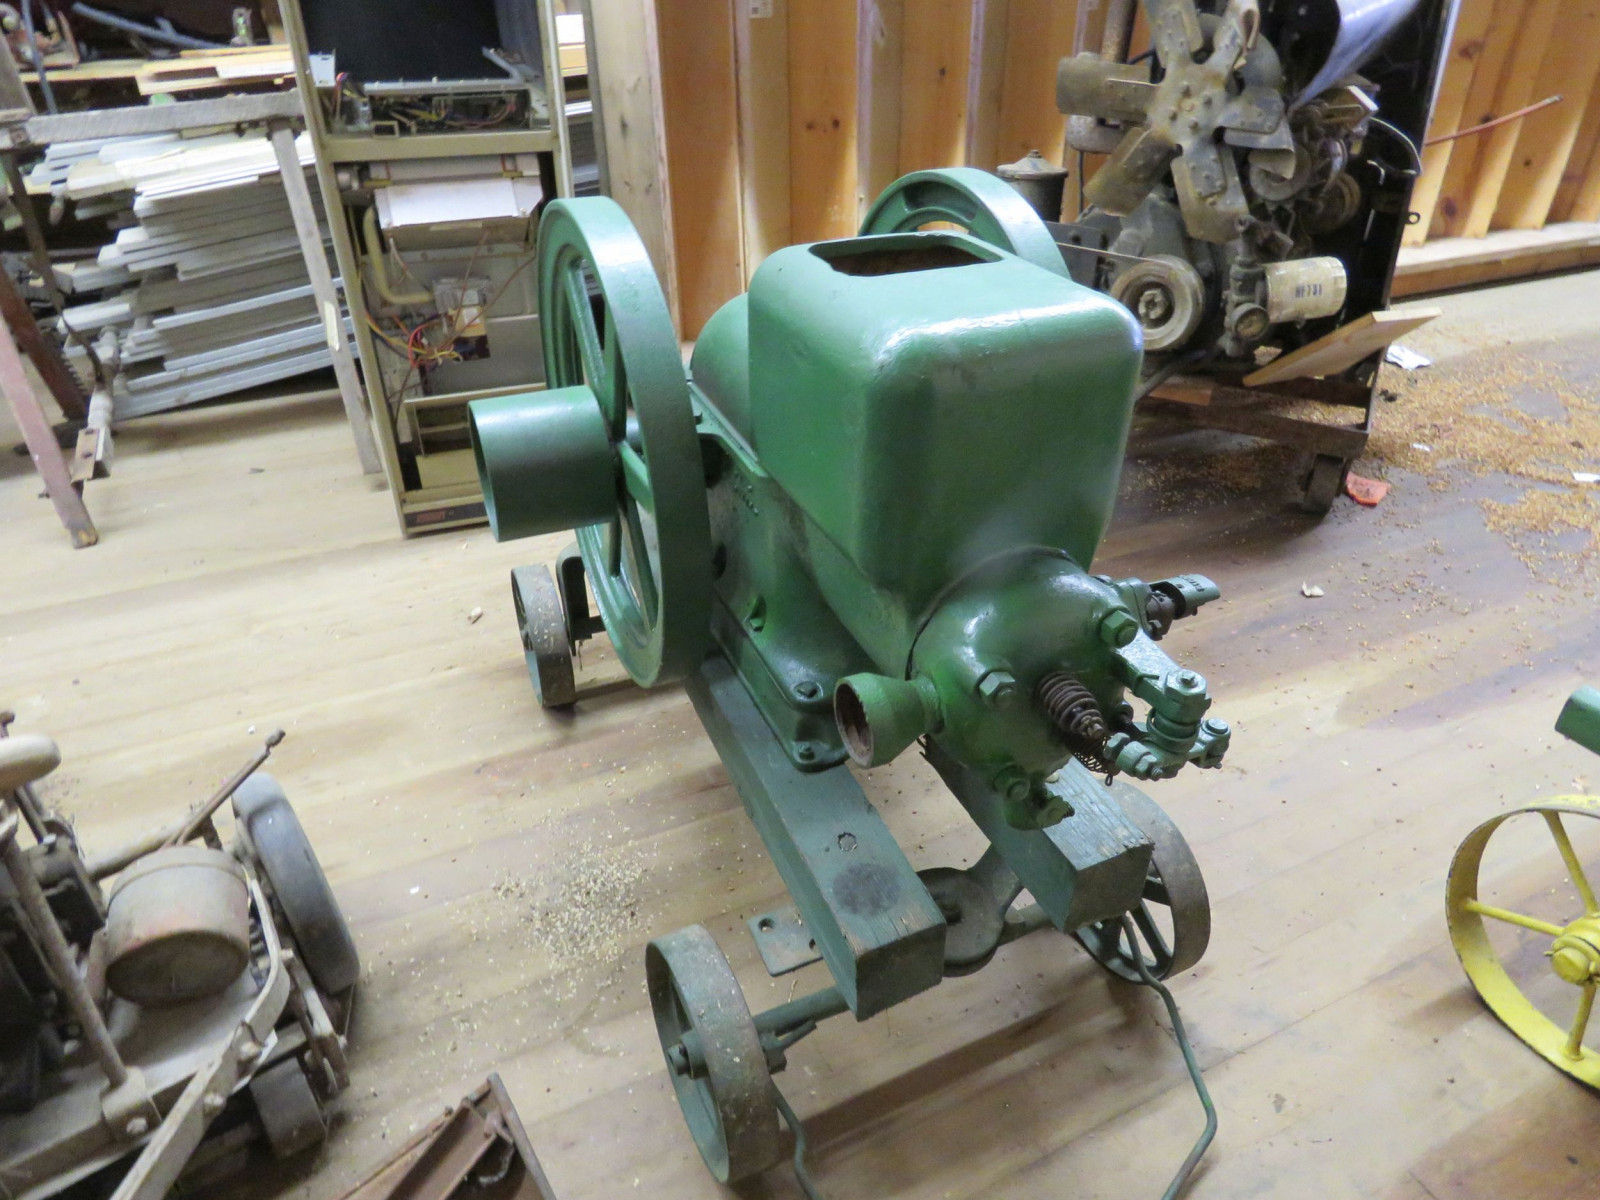 John Deere Type E 3hp Stationary Engine - Image 3